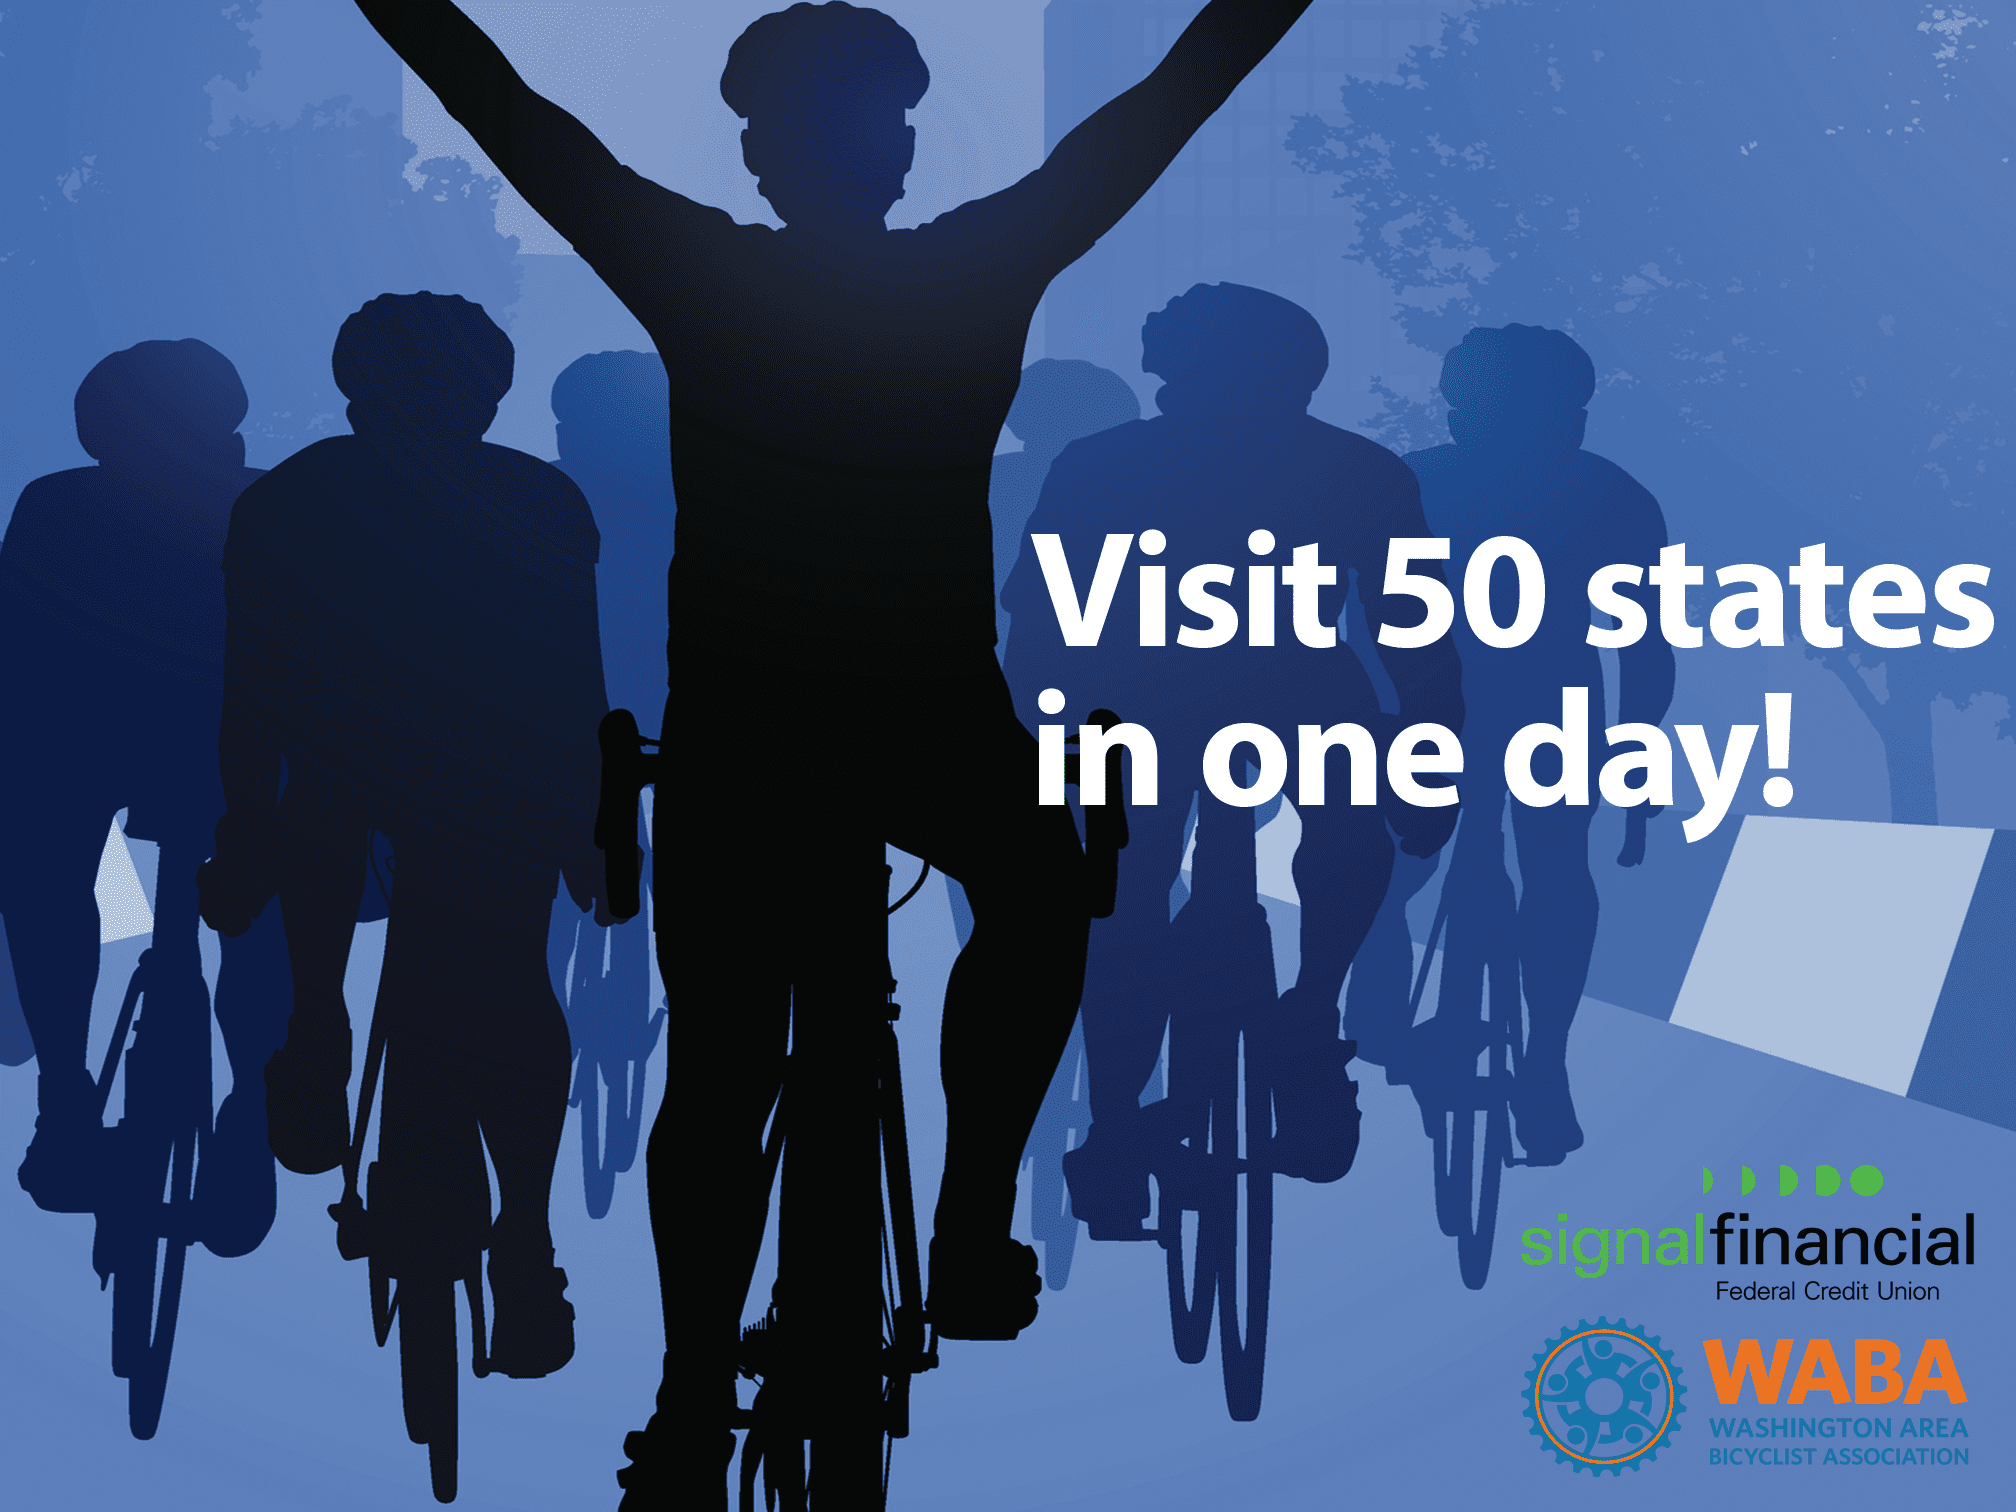 Visit 50 States in One Day graphic with people on bike and WABA logo